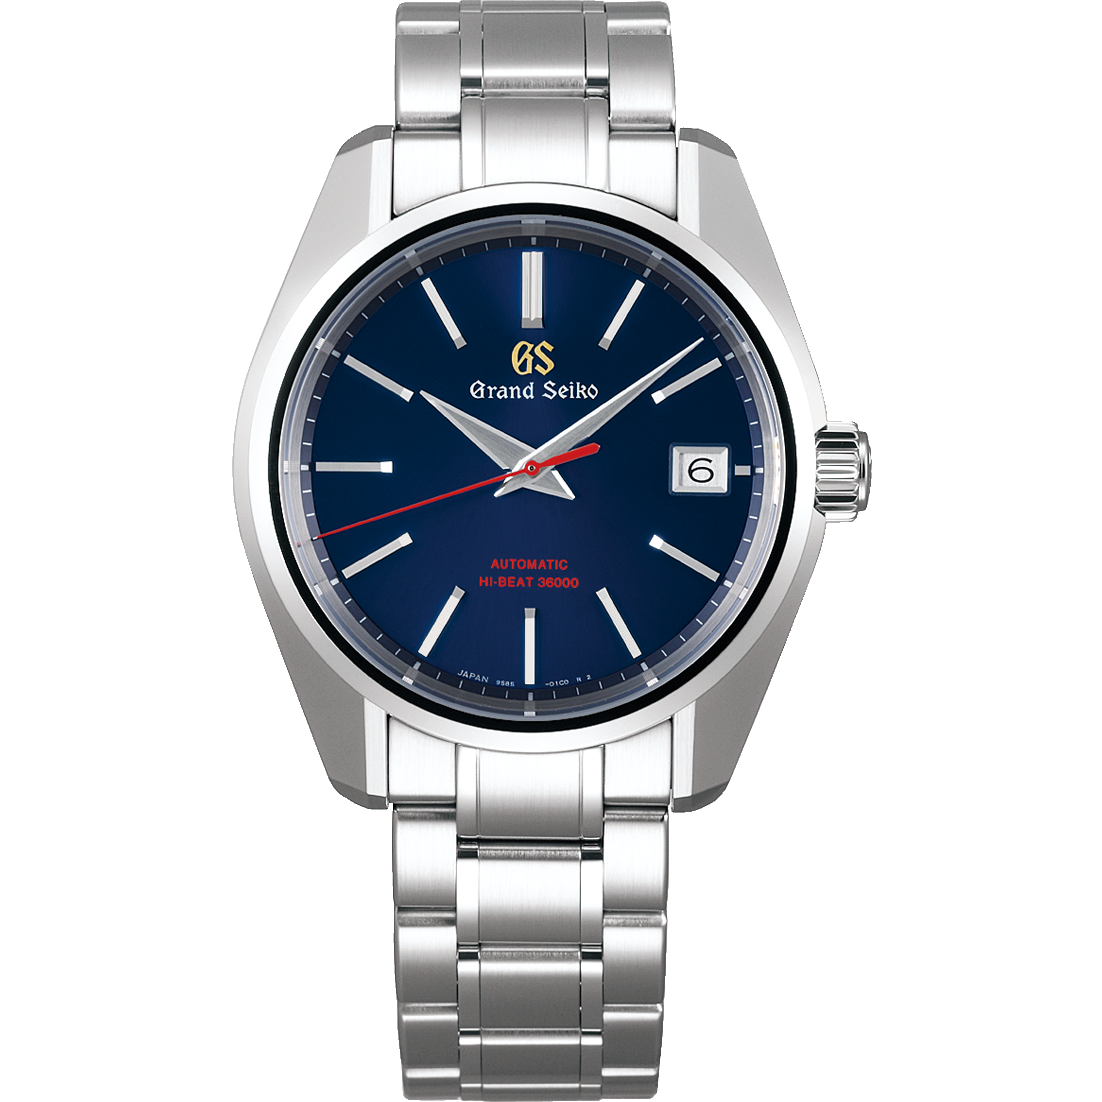 Grand Seiko 60th Anniversary Hi Beat Limited Edition Watch